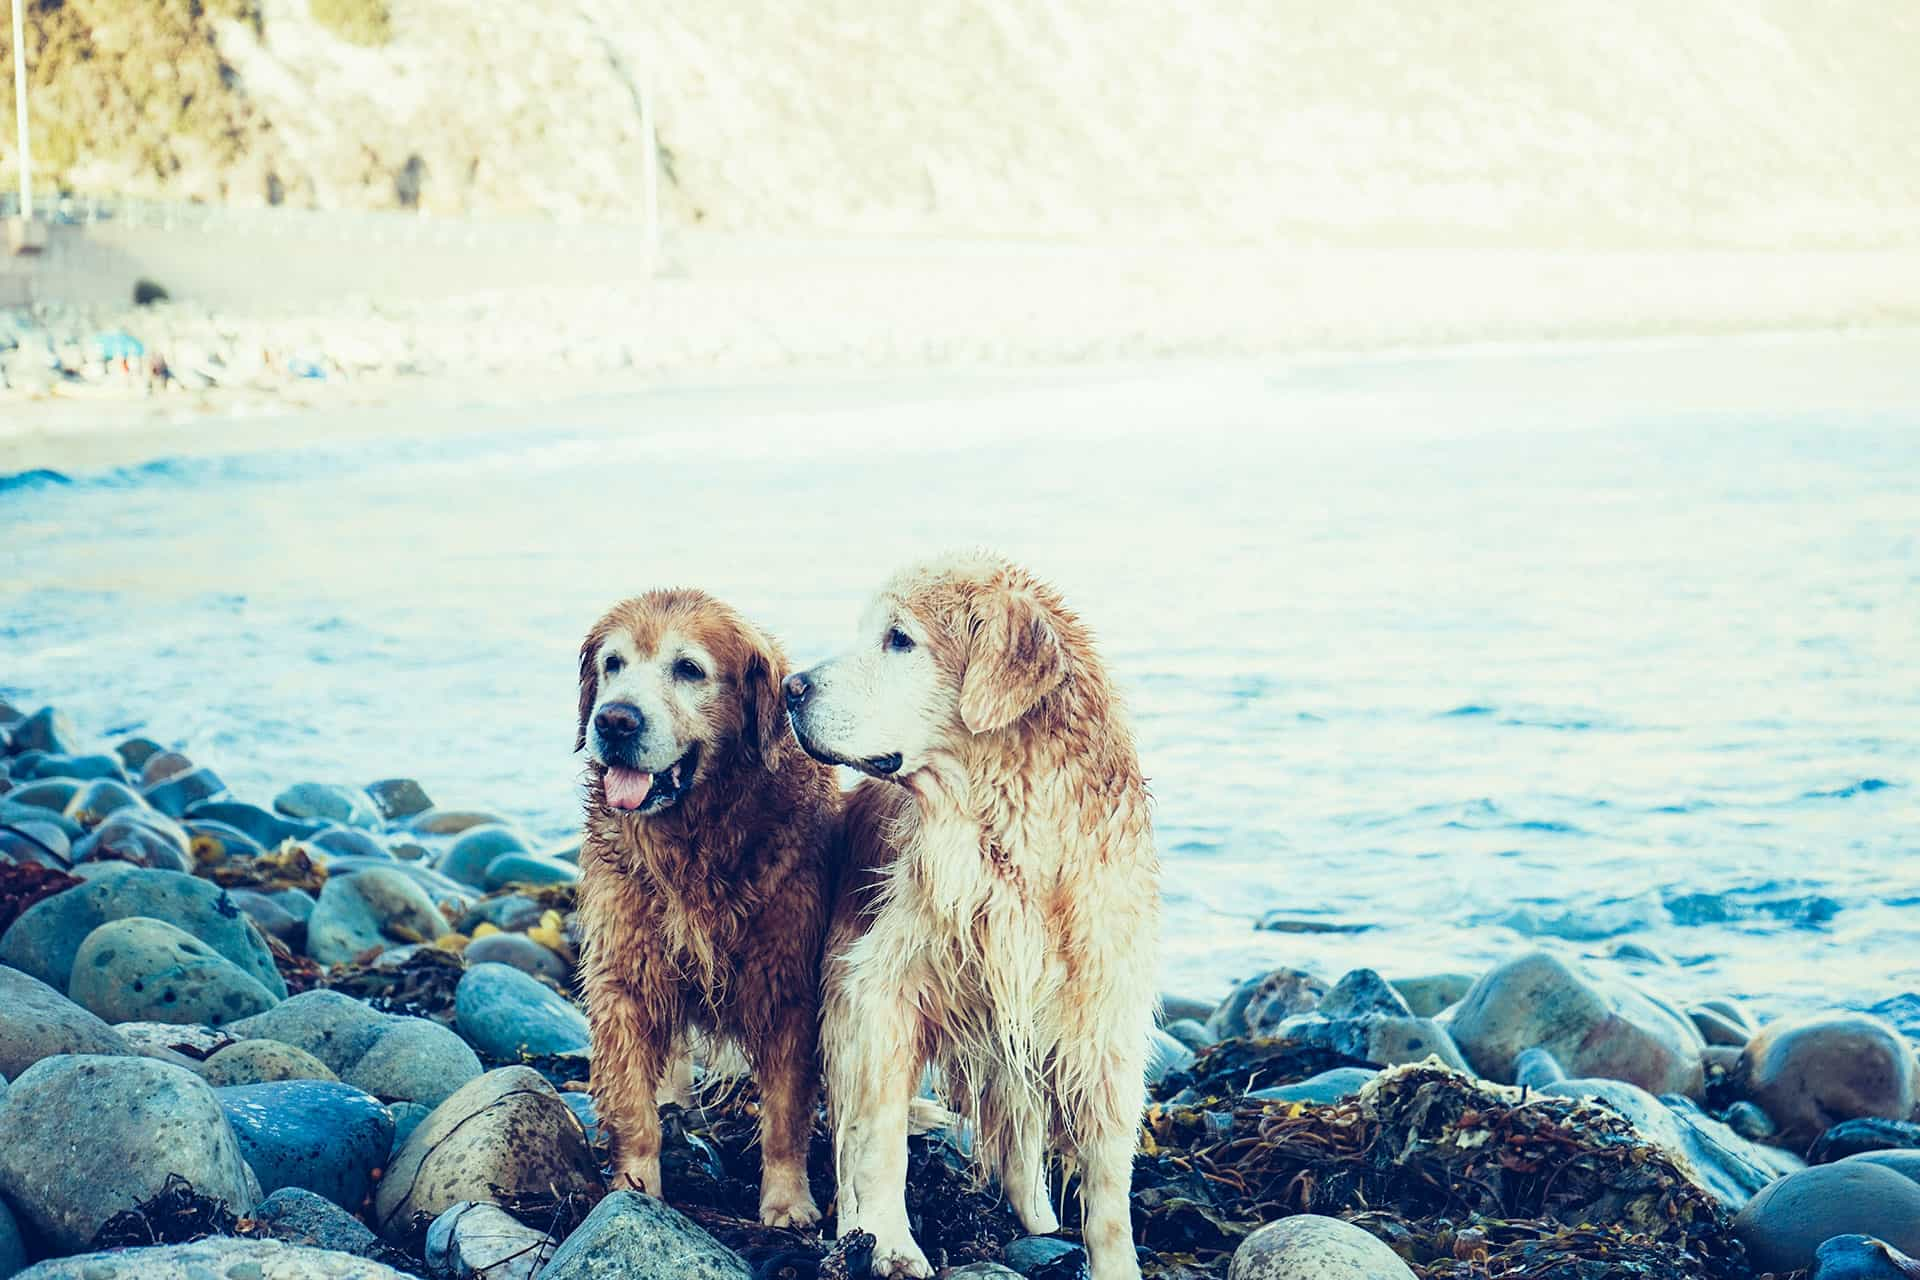 Two dogs on a pebble beach near the sea